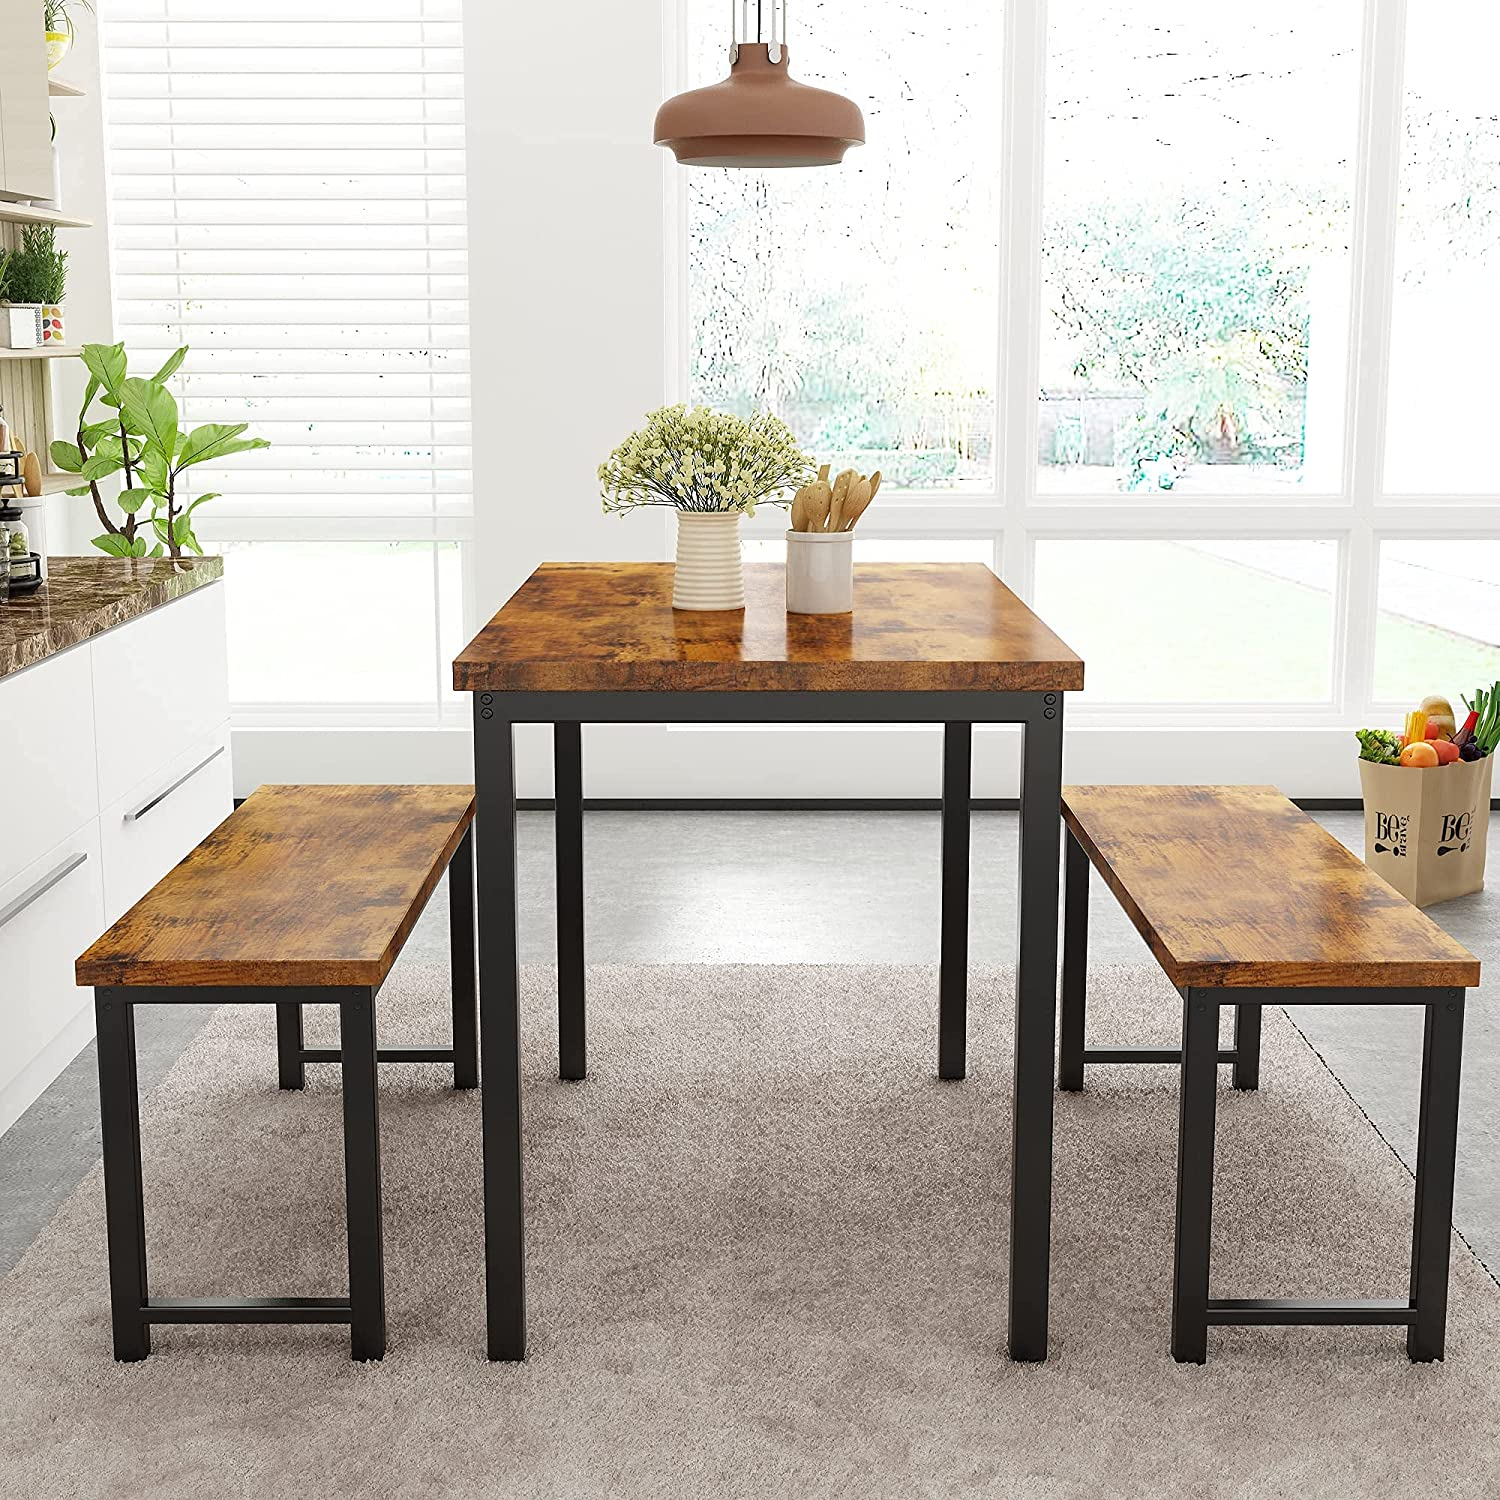 Buy AWQM Dining Room Table Set, Kitchen Table Set with 9 Benches ...